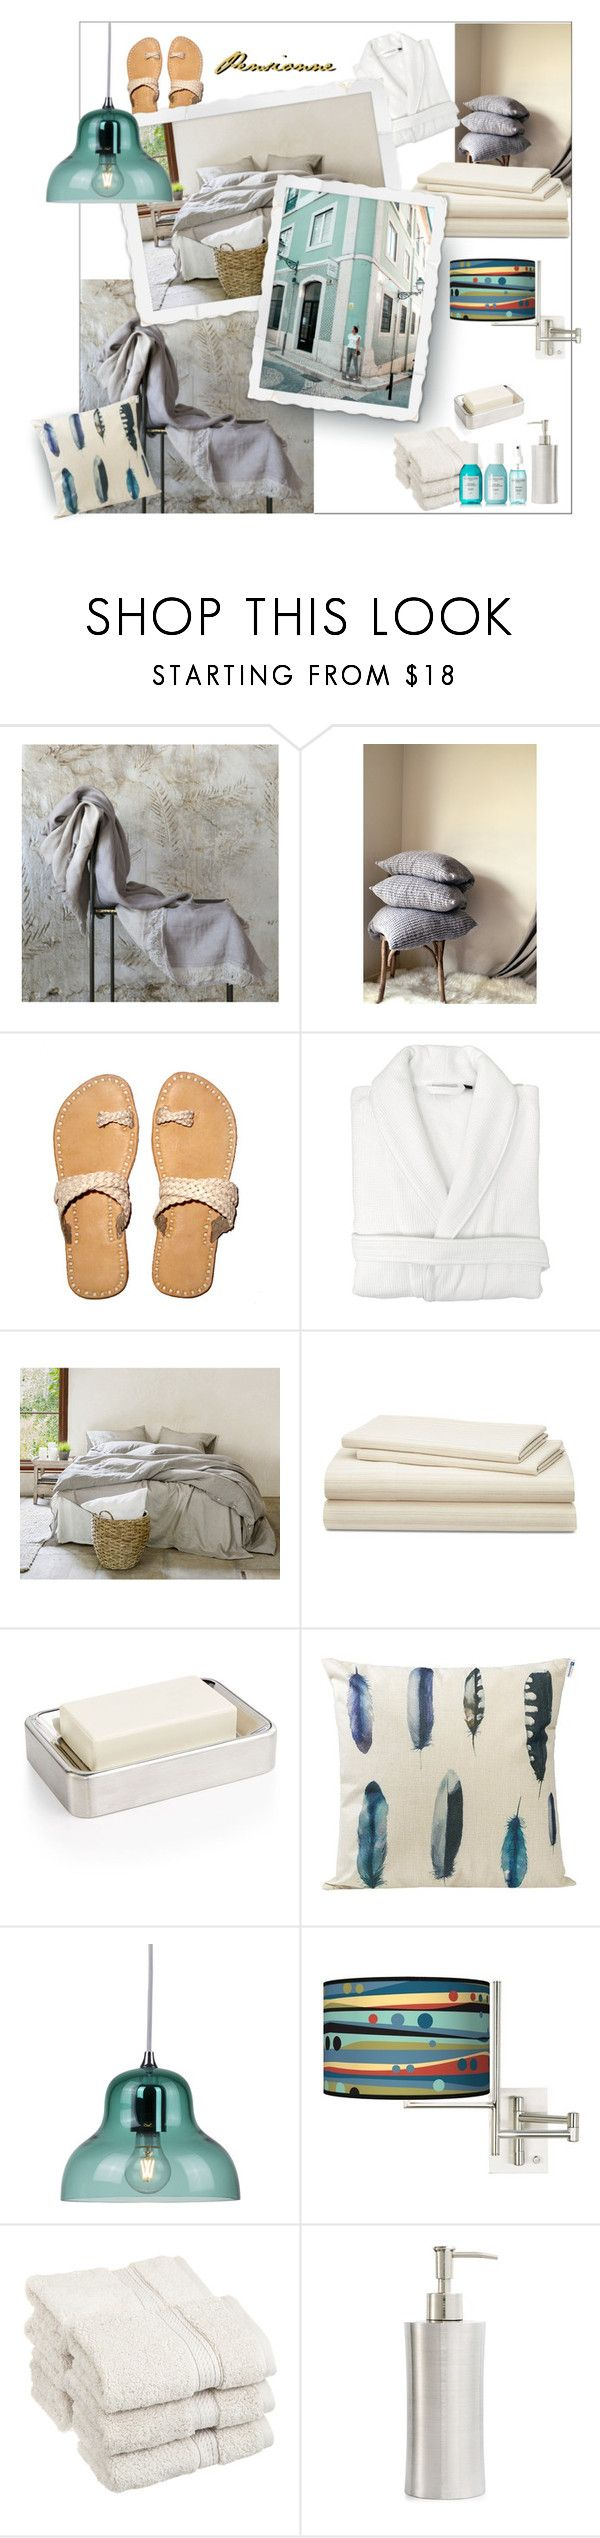 Pensionne linen hotel bedding by onenakedewe ❤ liked on polyvore featuring interior